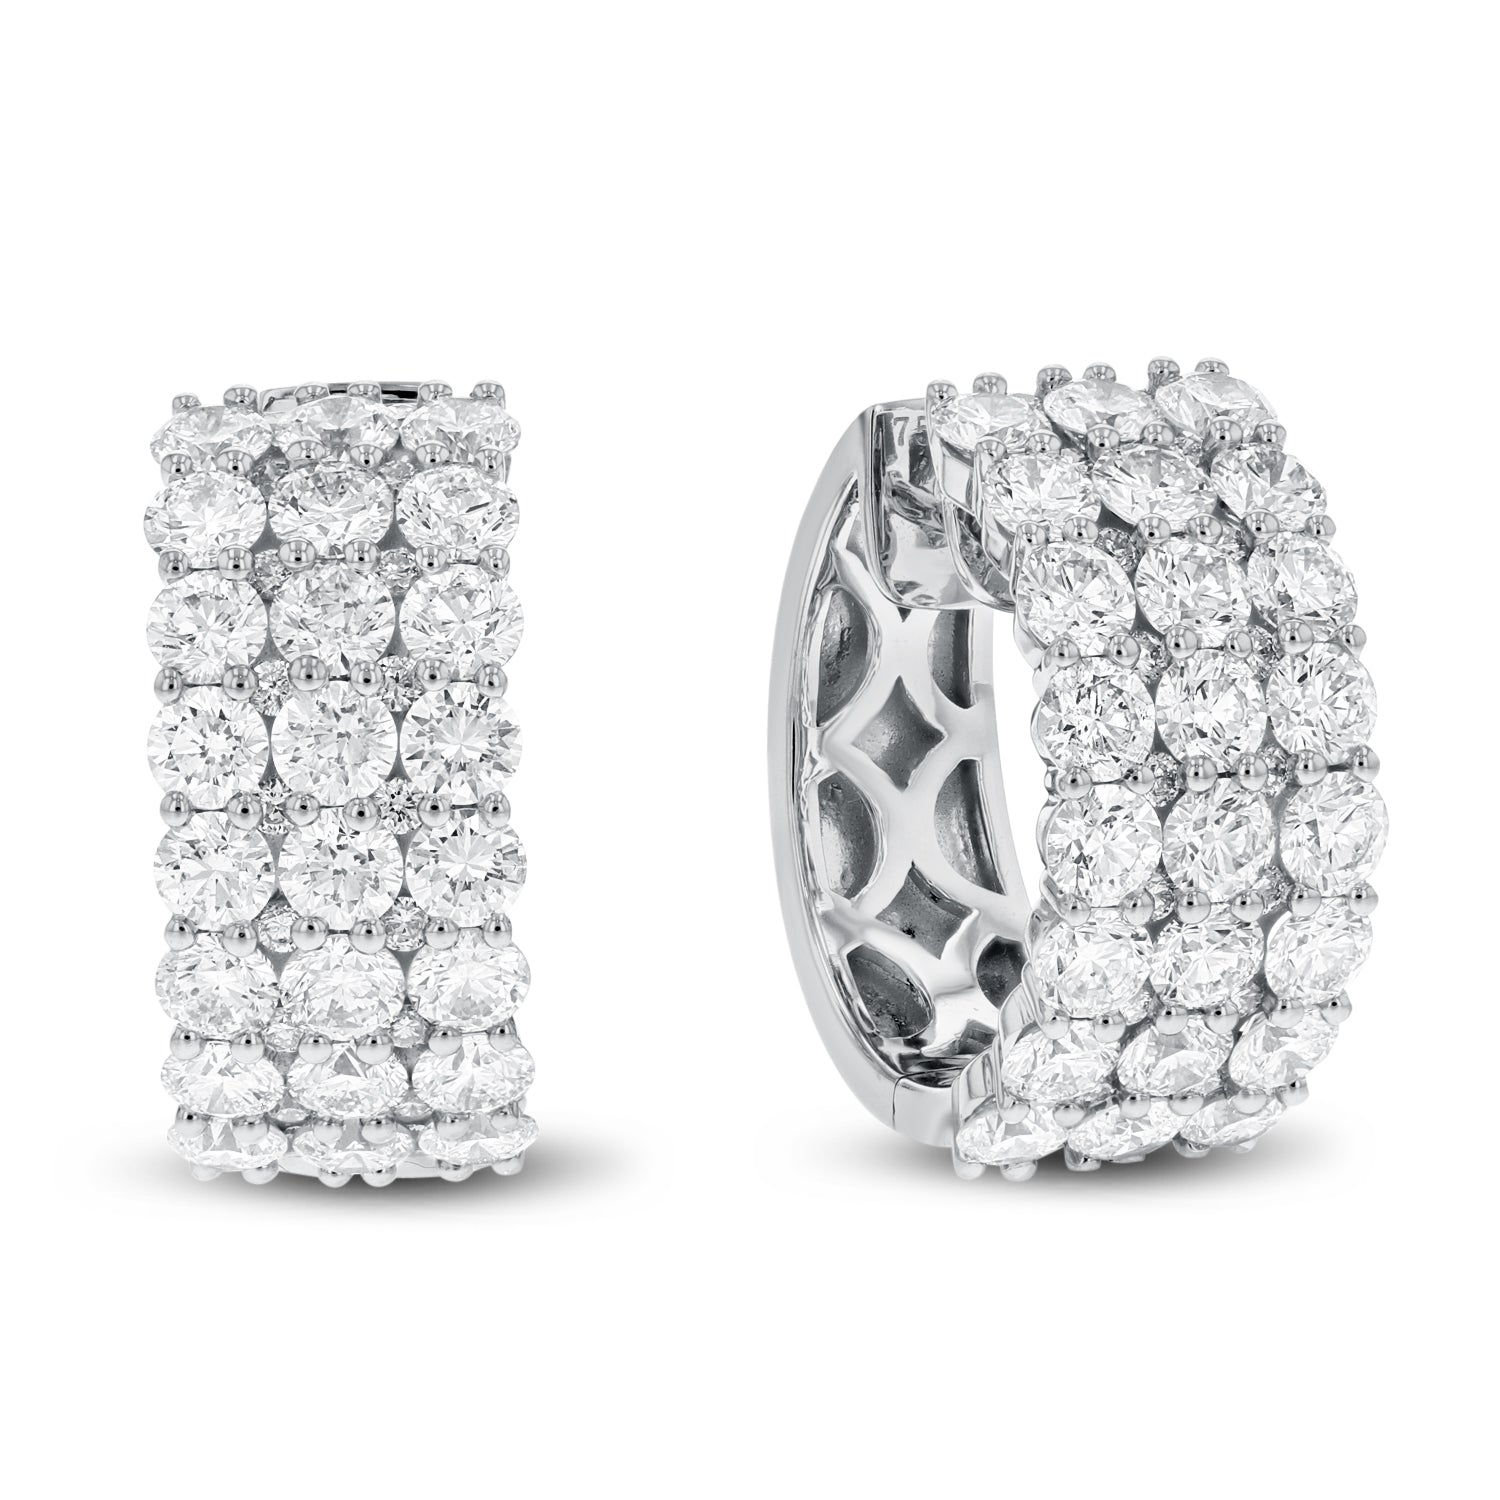 18K White Gold Diamond Earrings, 3.97 Carats